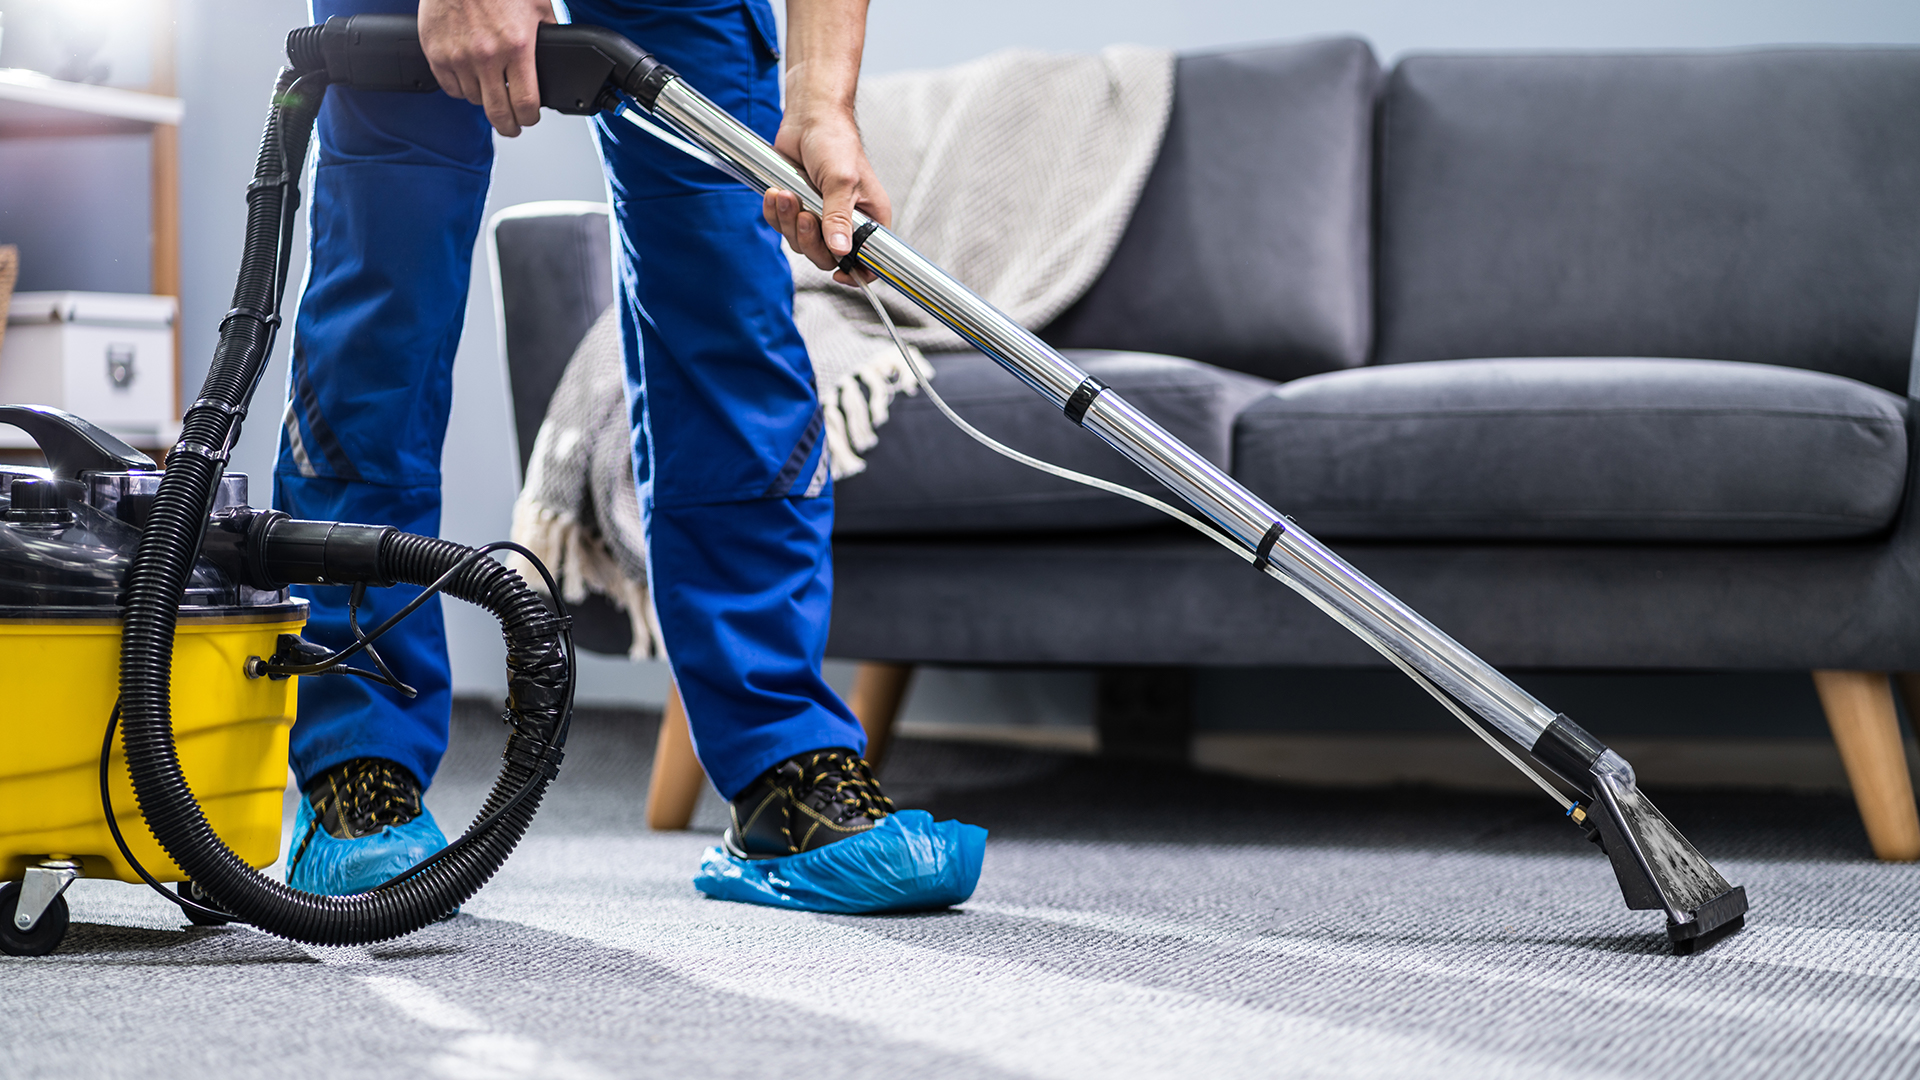 House Clearance & Cleaning For Home & Business